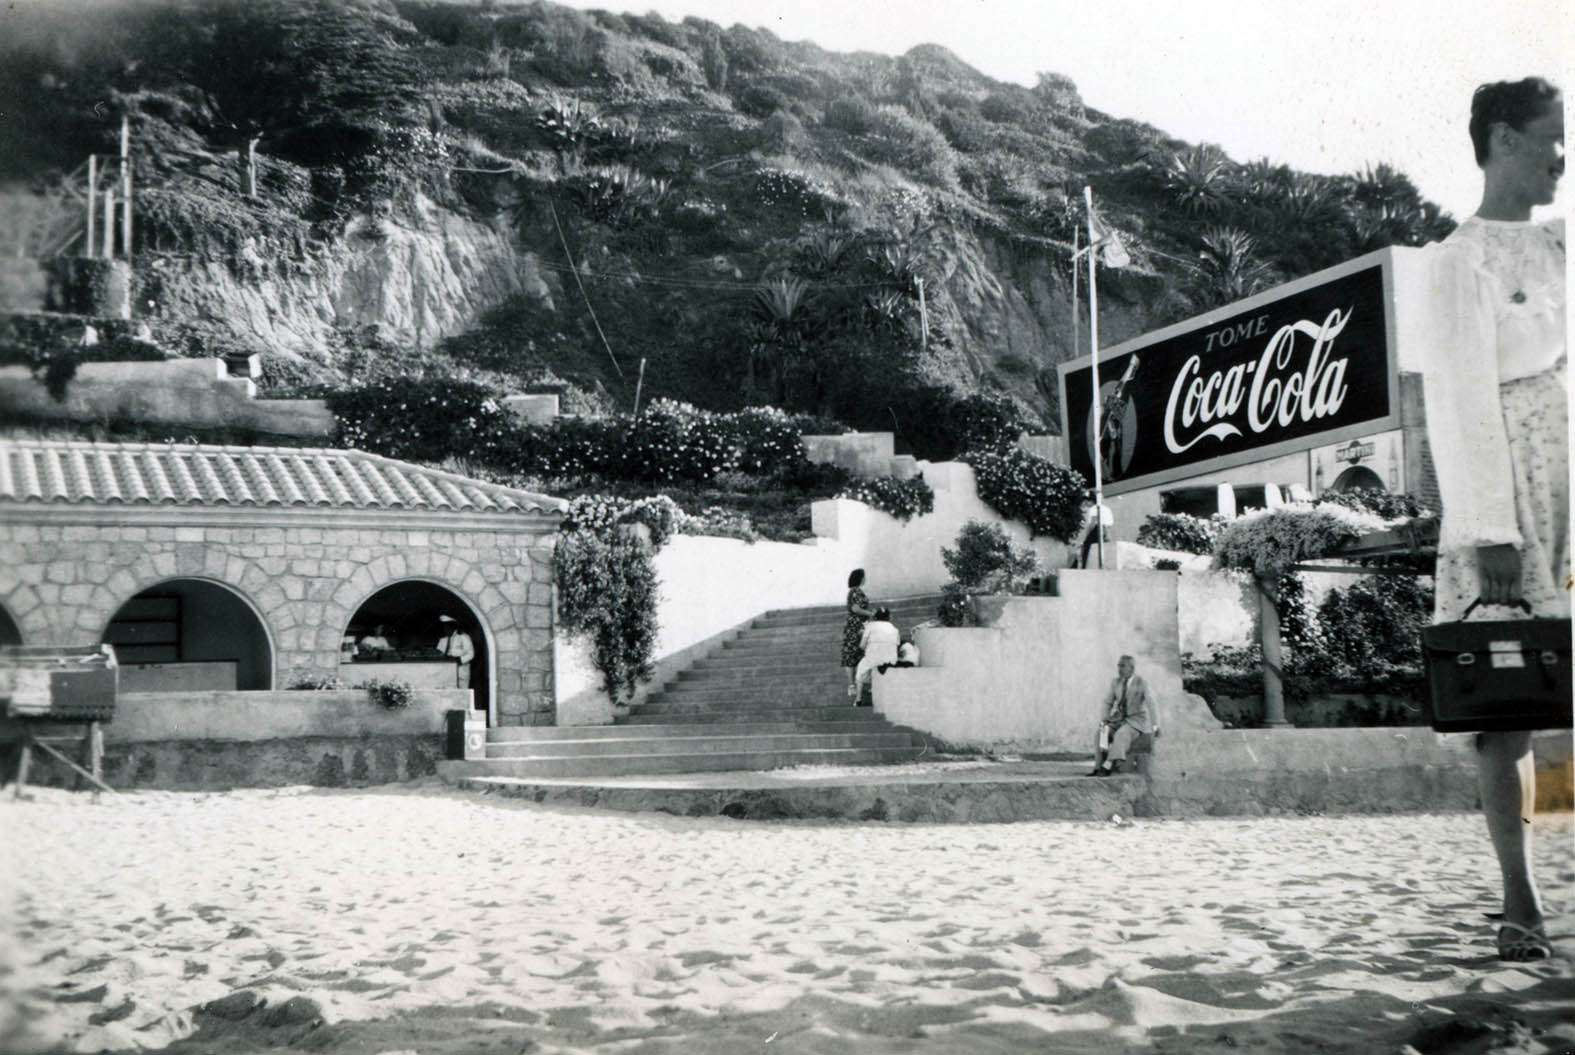 Enterreno - Fotos históricas de chile - fotos antiguas de Chile - Playa Las Salinas en 1948